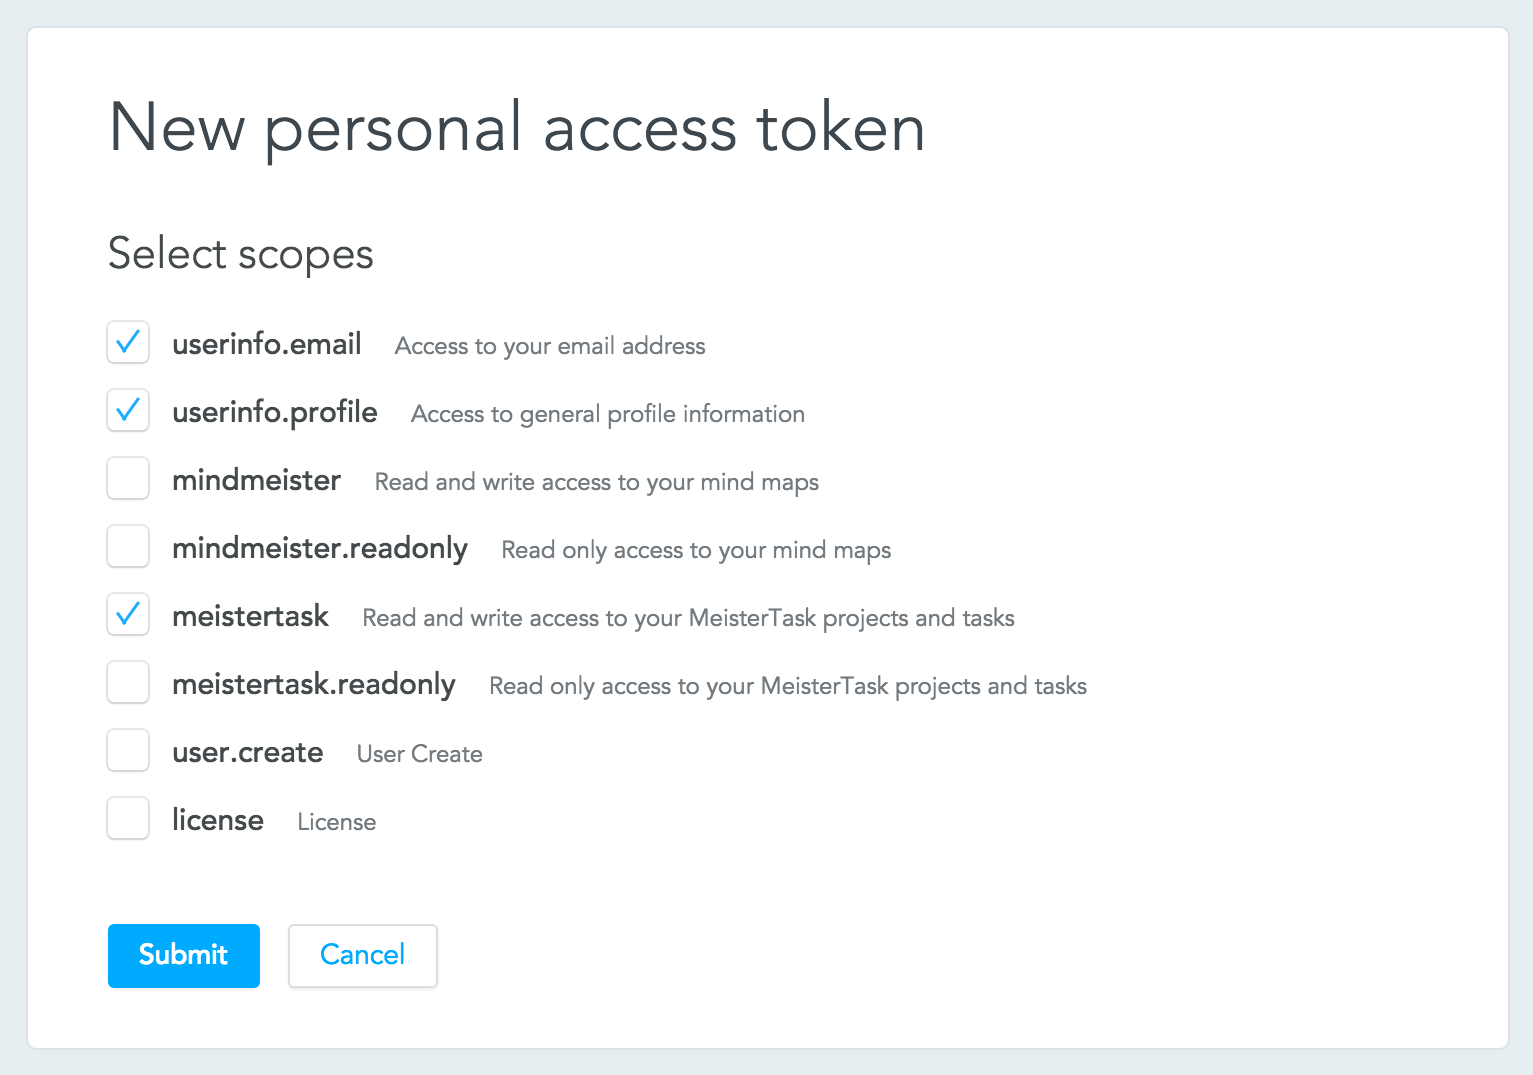 Retrieving your access token bugsnag with MeisterTask